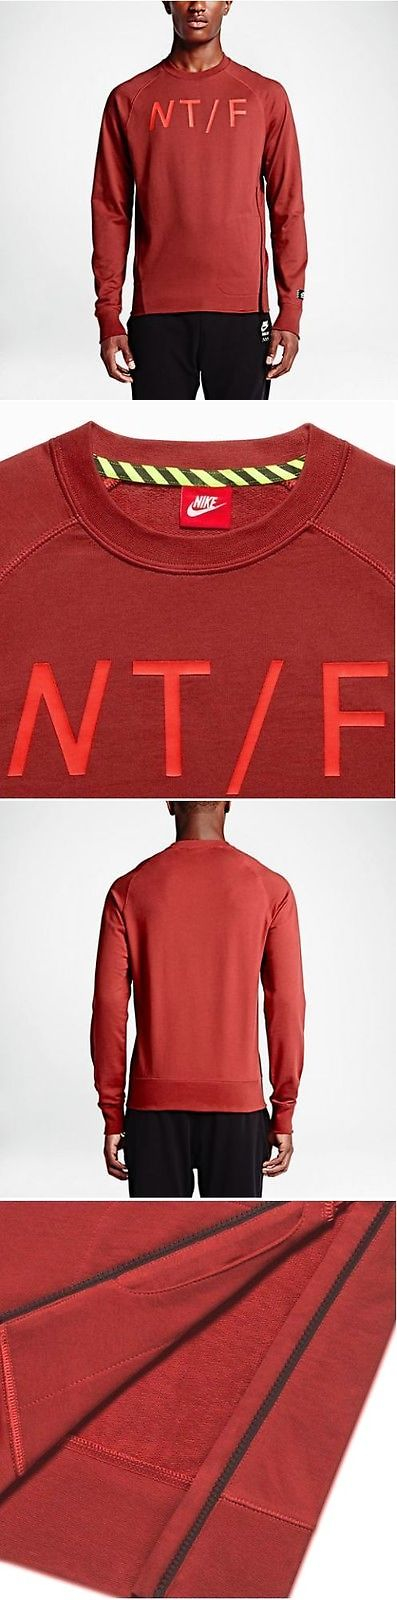 Hoodies and Sweatshirts 59392: Nwt Men S Nike Track And Field Crewneck Sweatshirt Xl 687430 Warmup Sport Casual -> BUY IT NOW ONLY: $34.99 on eBay!